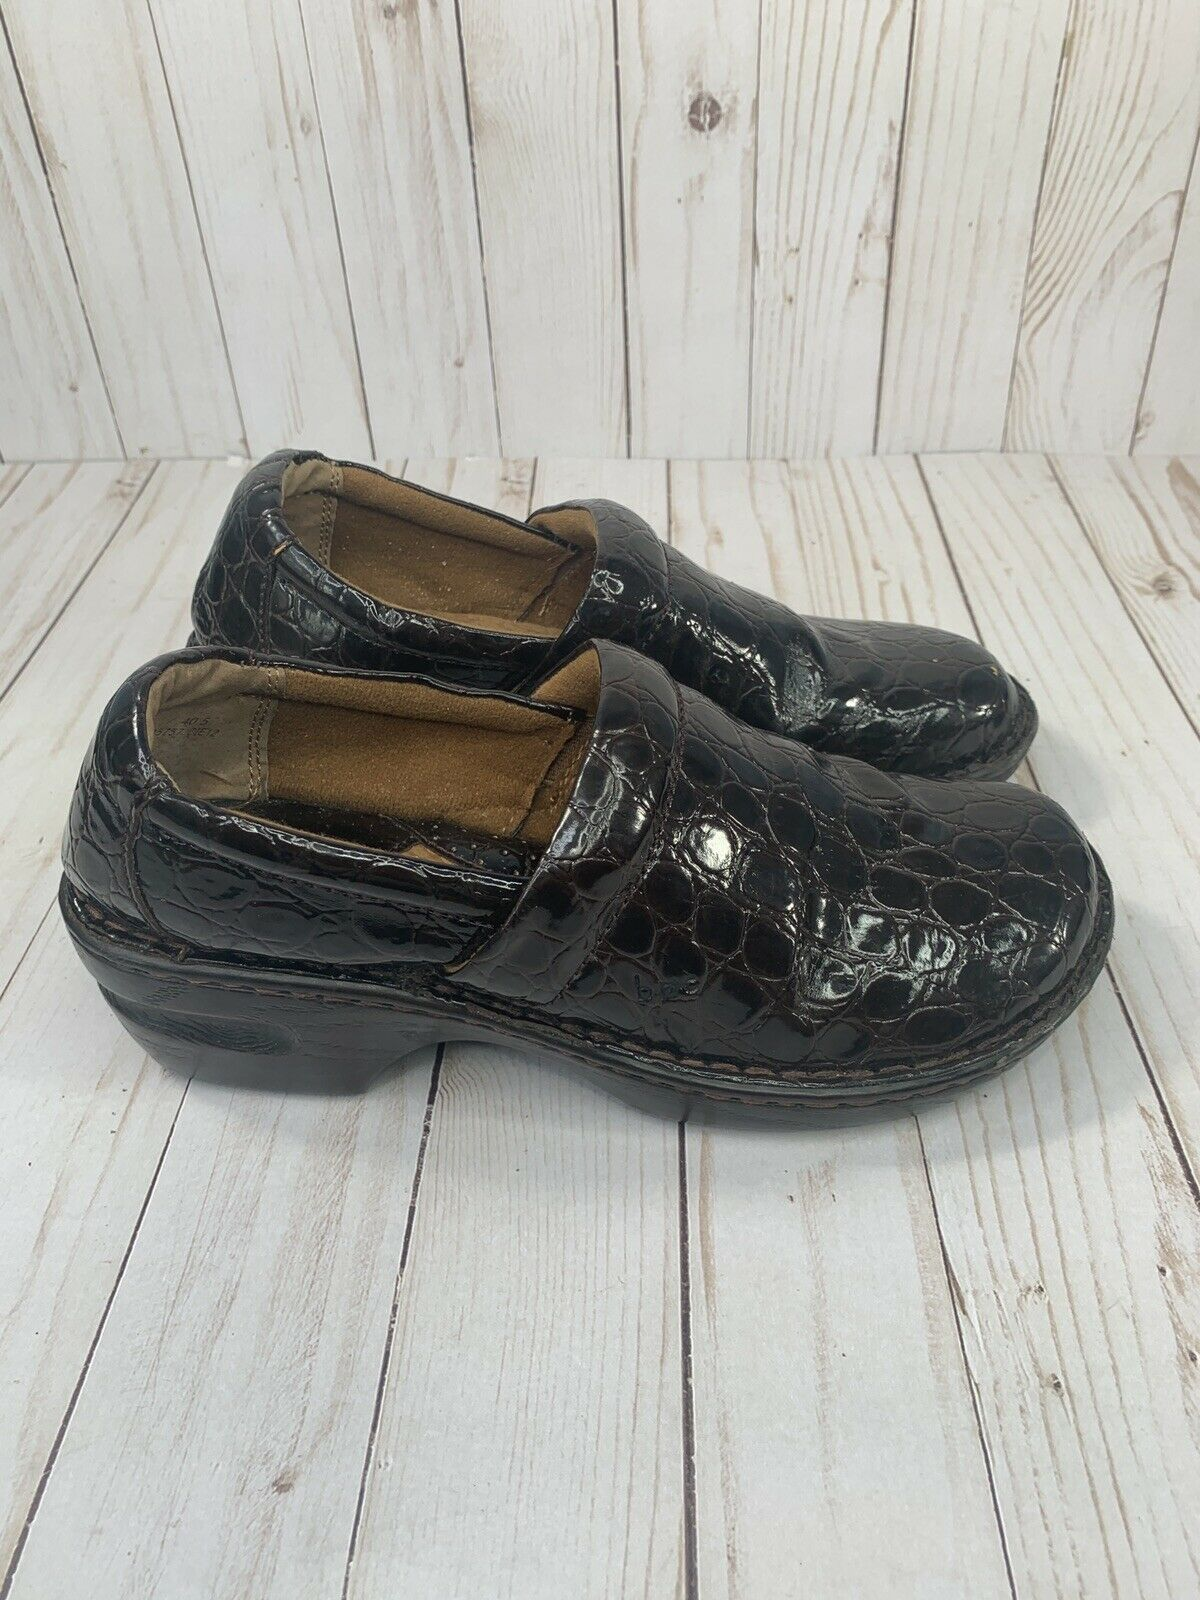 b.o.c. By Born 'Peggy' Brown Crocodile Embossed Clogs Size 9